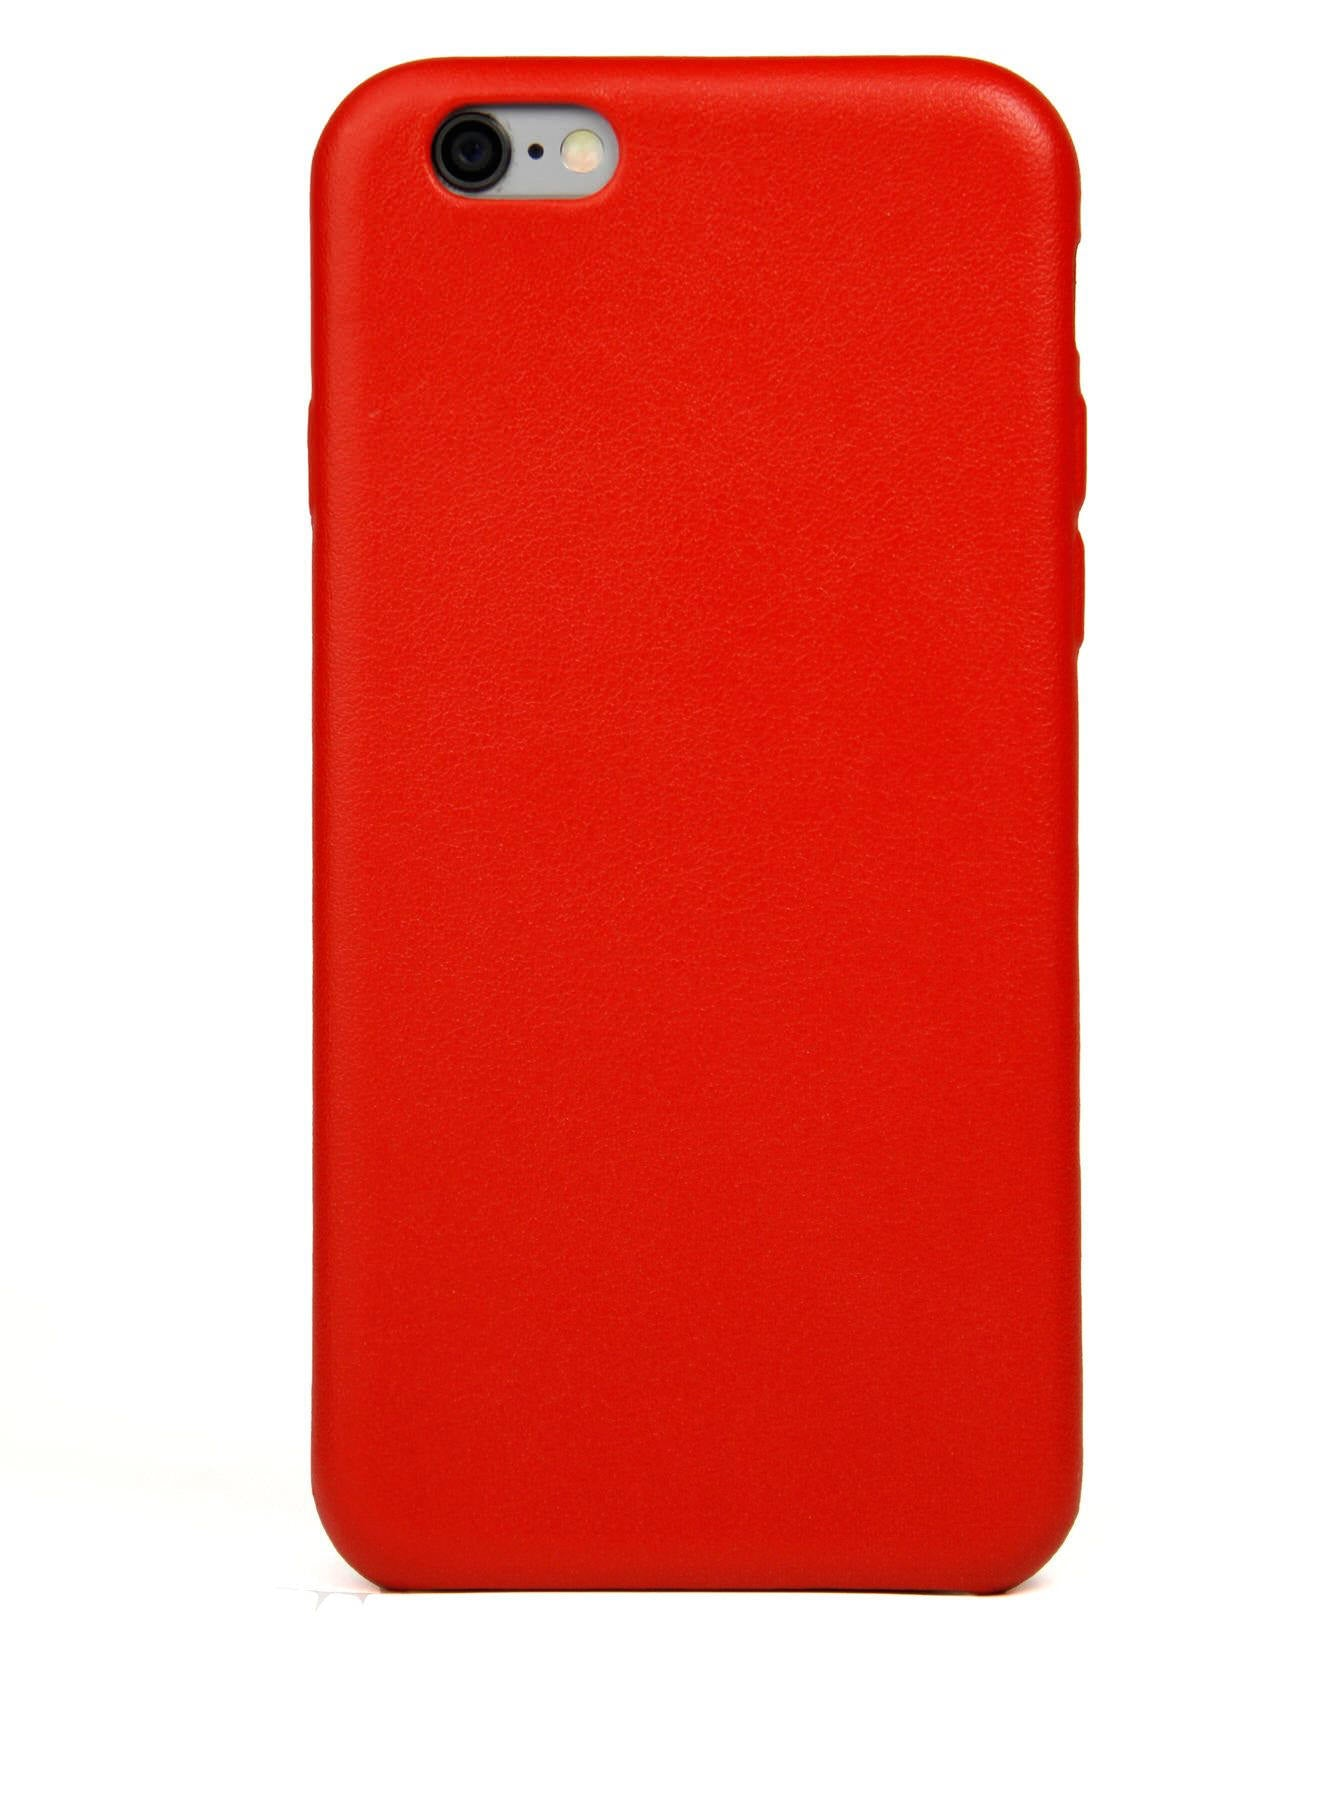 iPhone 6 Case, Red Leather